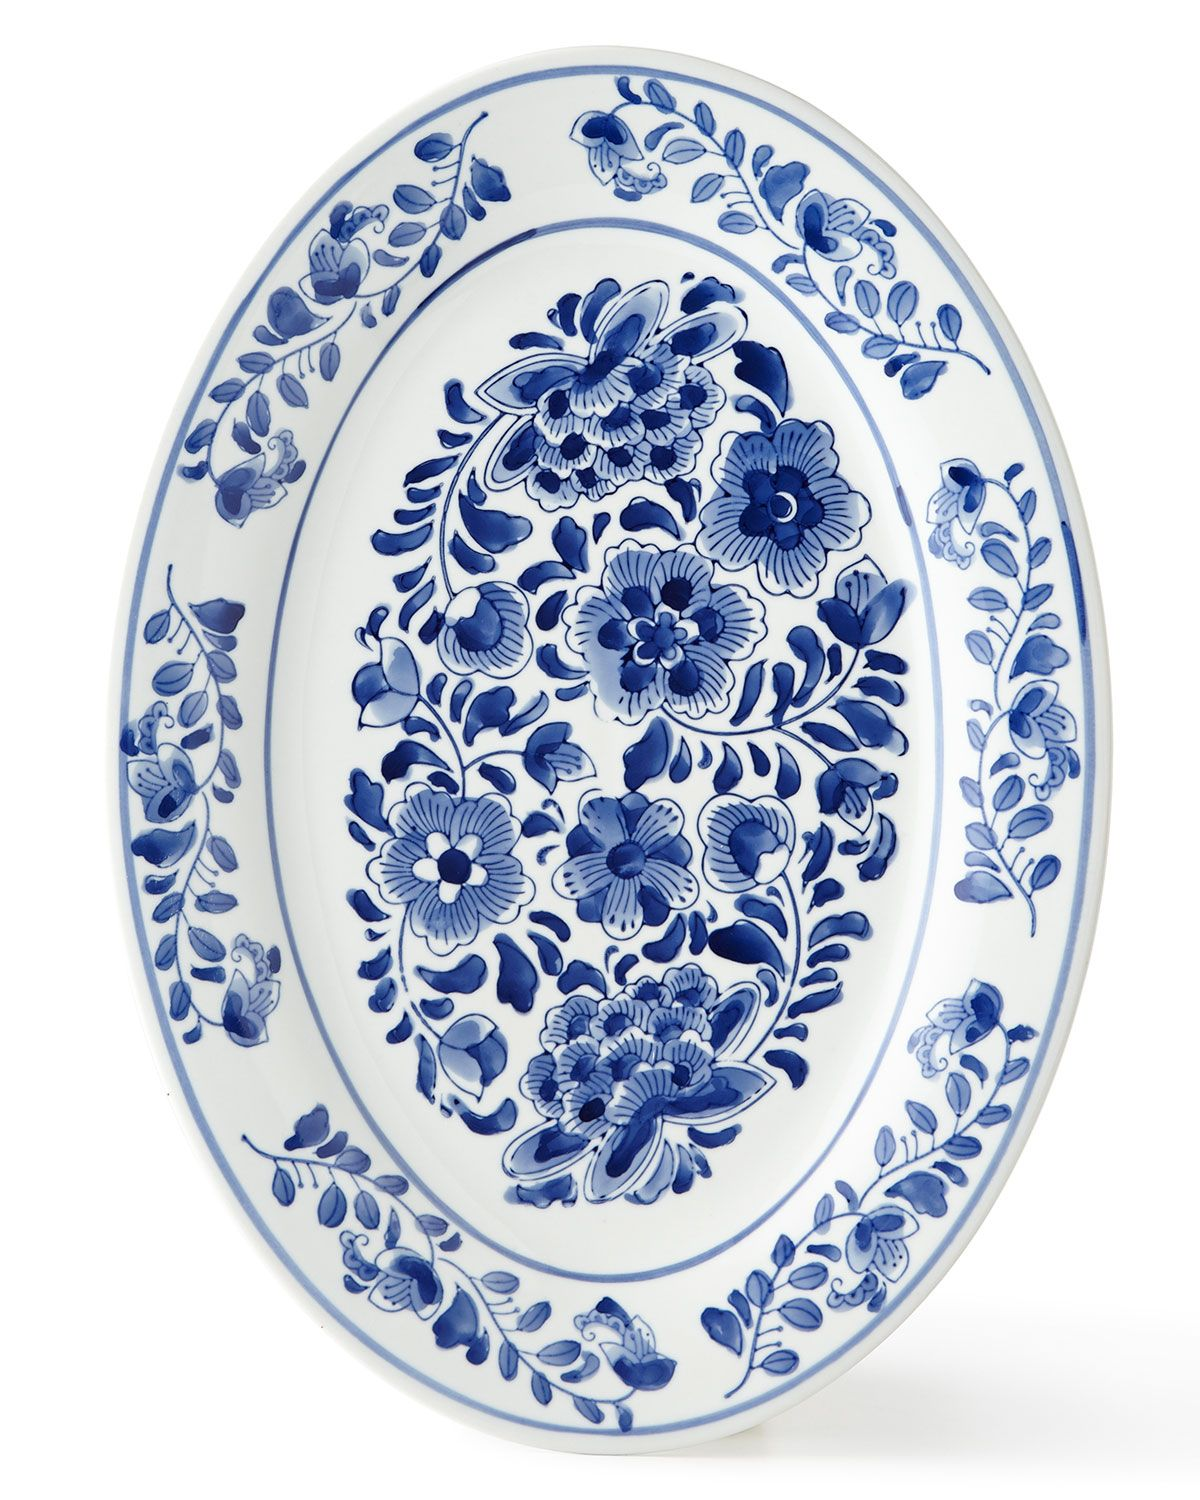 Each Traditional Oval Platter